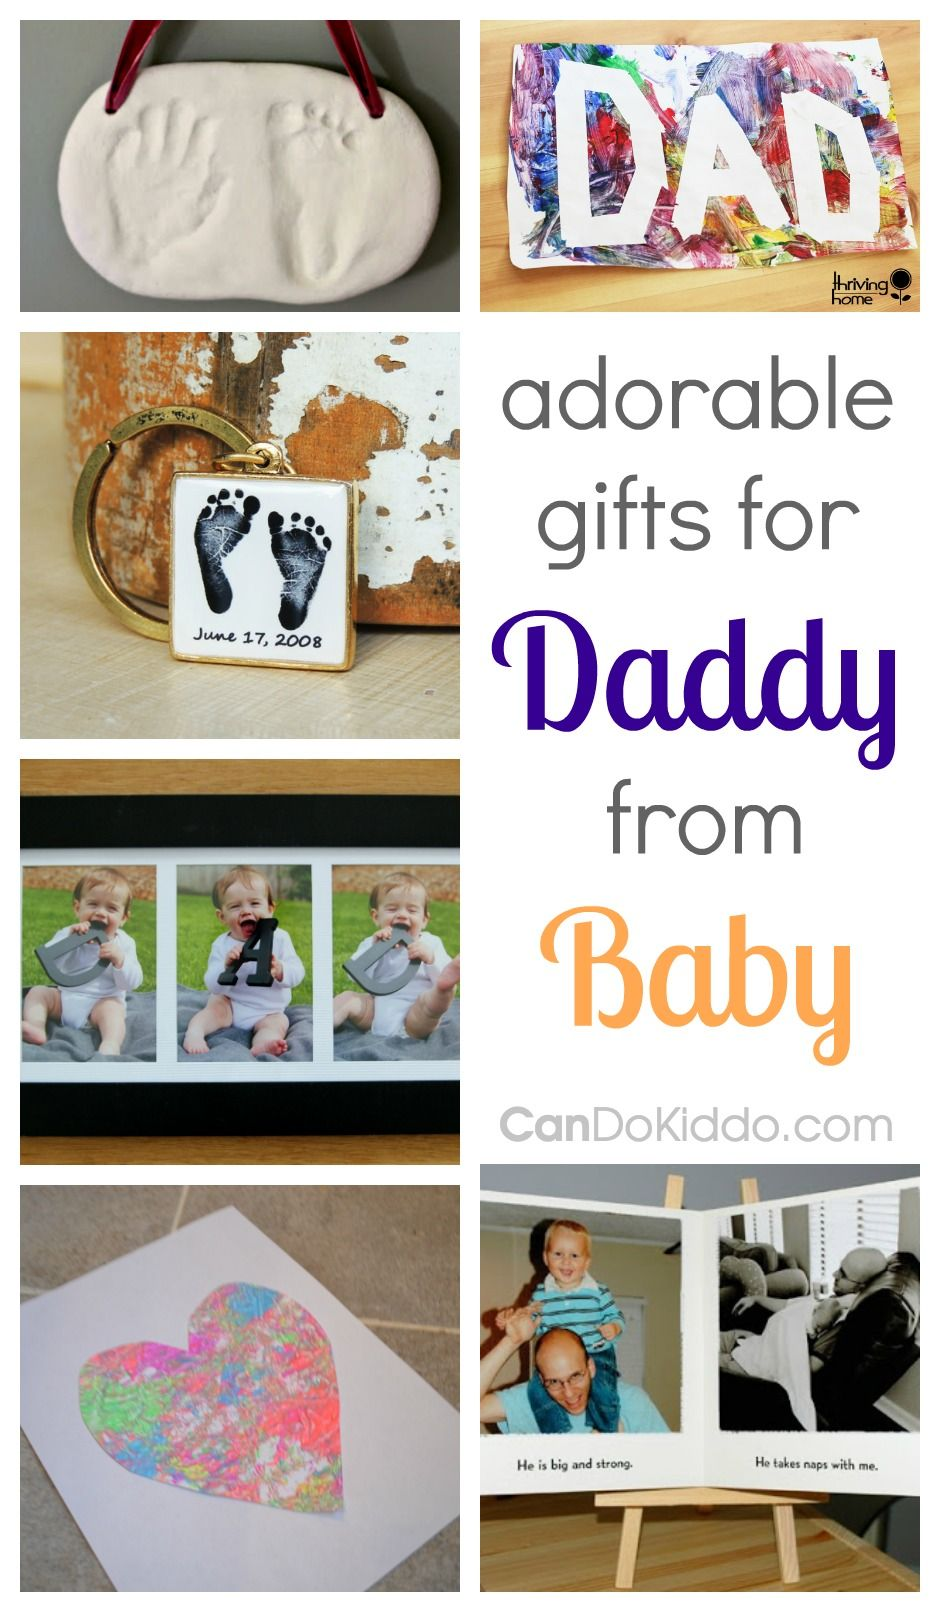 Adorable gifts for dad from baby cando kiddo birthday